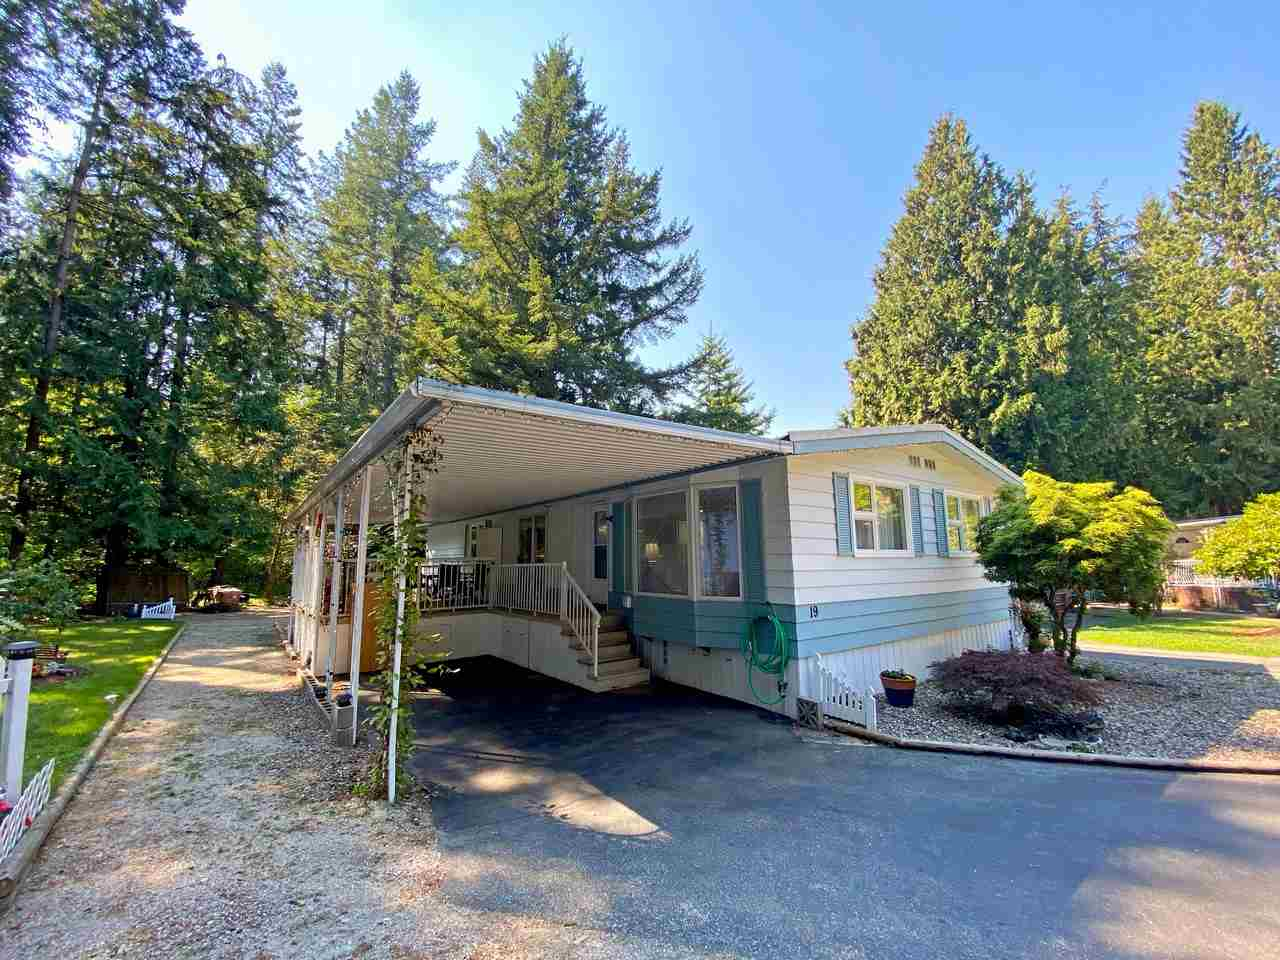 """CEDAR LANE SENIORS PARK -  Over $30,000 in recent updates! 55+ mobile home park in Brookswood. Rarely available renovated double-wide manufactured home. This unit includes a massive kitchen / living room / family room area; HUGE covered 14 x 14 deck; a large master bedroom with en suite; a detached powered workshop (220v / 40 amp service); and the largest private pad in the park. Recent updates include: laminate flooring (2017), kitchen appliances (2017), lighting, paint, countertops and backsplash (2019). Roof has thick asphalt membrane material. Walking distance to bus stops, grocery shopping, pub, and coffee shop. One small pet OK (dog up to 14""""). Very quiet area. Do not miss out!"""